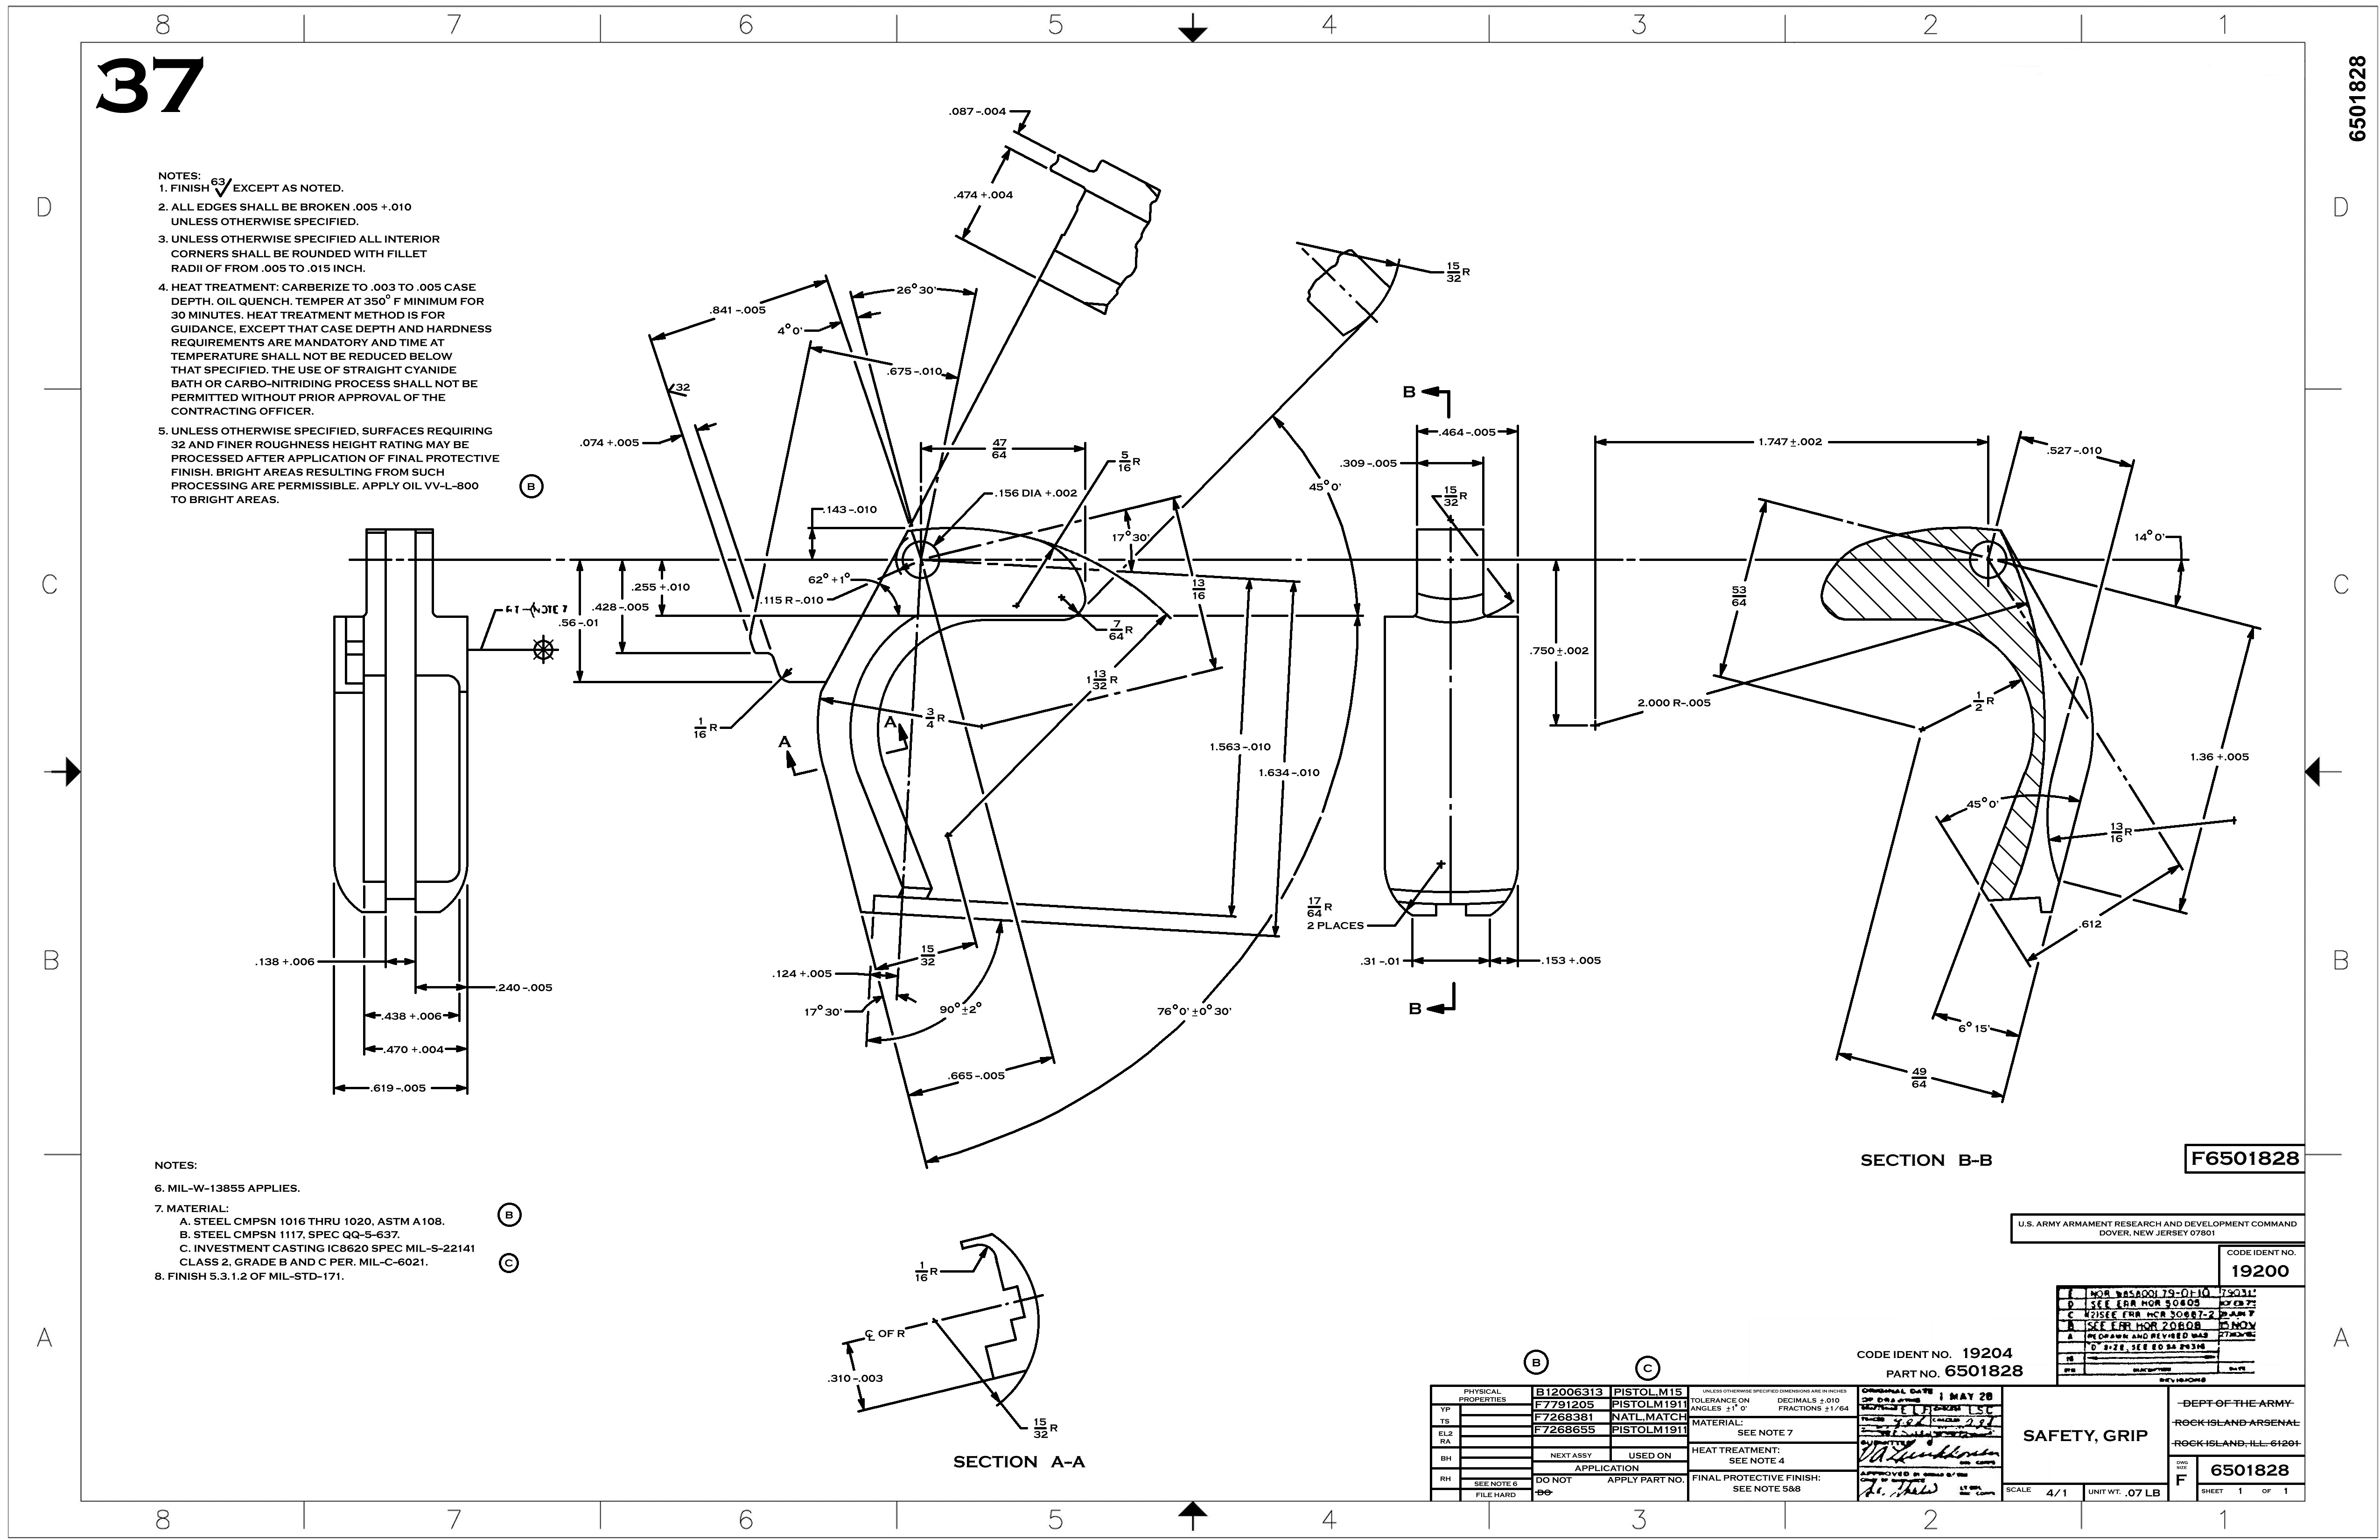 1911 Technical Drawings on relay schematic, remington 121 schematic, kimber schematic, walther ppk schematic, 1903 springfield schematic, switch schematic, benelli m4 schematic, transistor schematic, fal schematic, kel-tec pf-9 schematic, rpd schematic, beretta 92fs breakdown schematic, power supply schematic, ar-15 schematic, kel-tec p3at schematic, sig sauer mosquito parts schematic, benelli m2 schematic, 2011 pistol schematic, hydraulic schematic, m16 schematic,